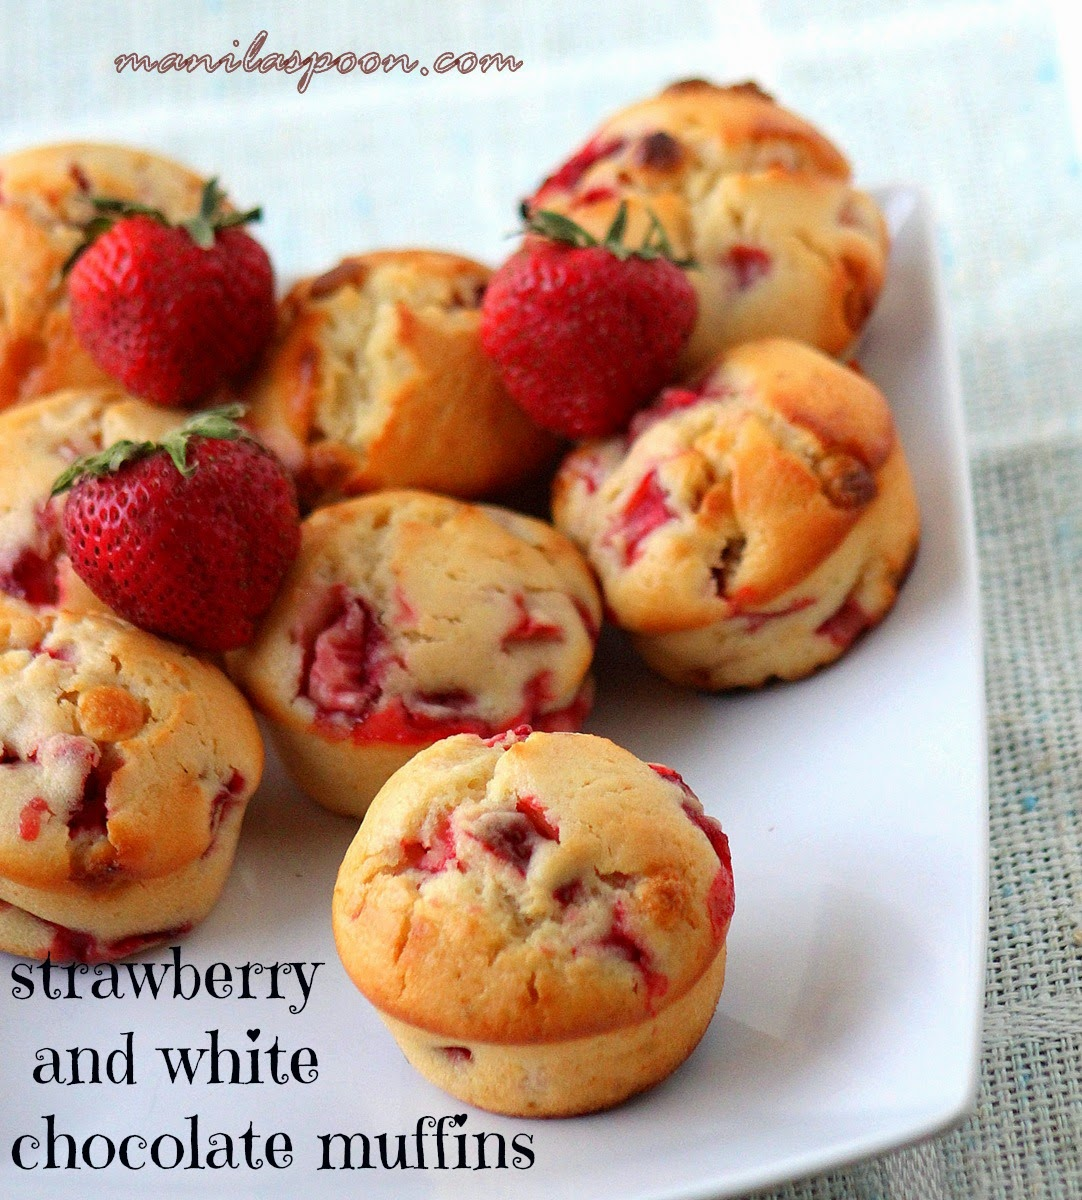 Moist, fruity and chocolaty fresh strawberry muffins are the best way to start your day! #strawberry #muffins #white #chocolate #breakfast